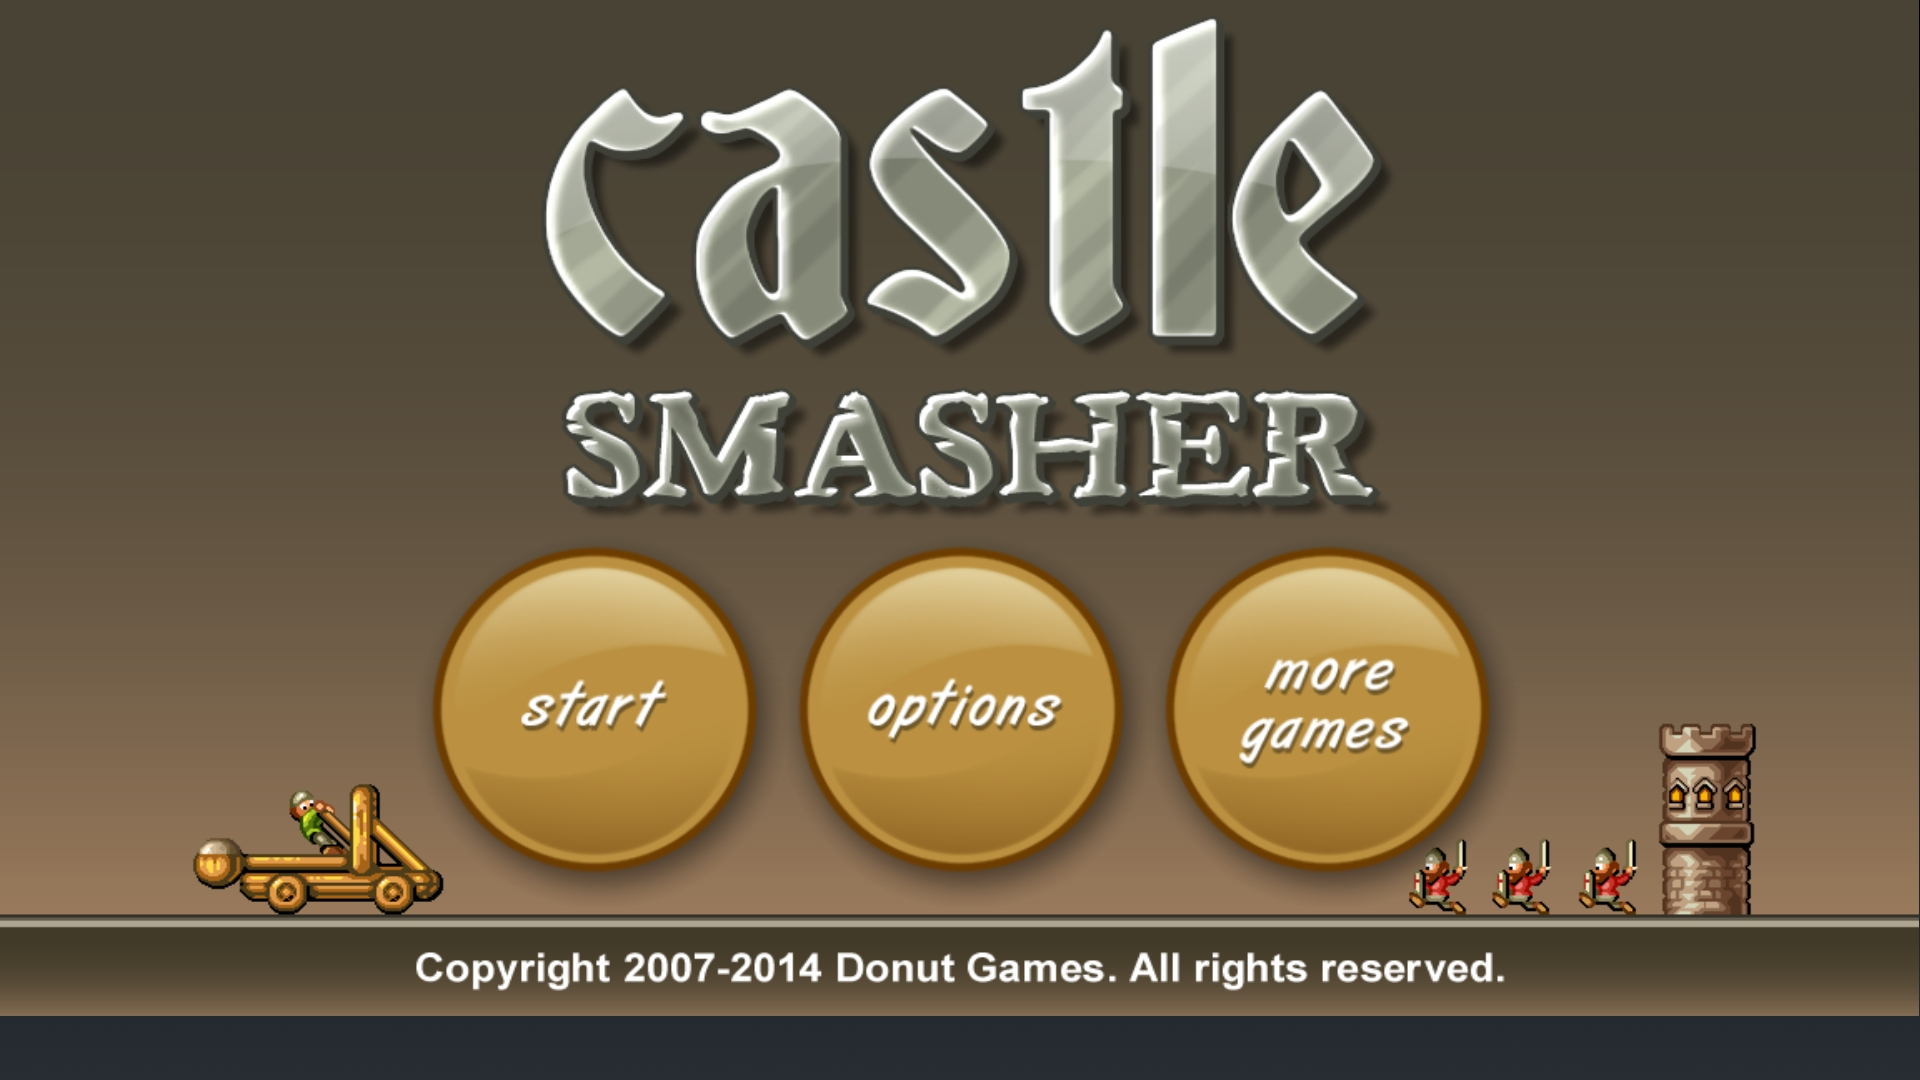 Bamse: Castle Smasher: Challenges: 05 Introducing Torches (Android) 43 points on 2019-08-21 17:08:37